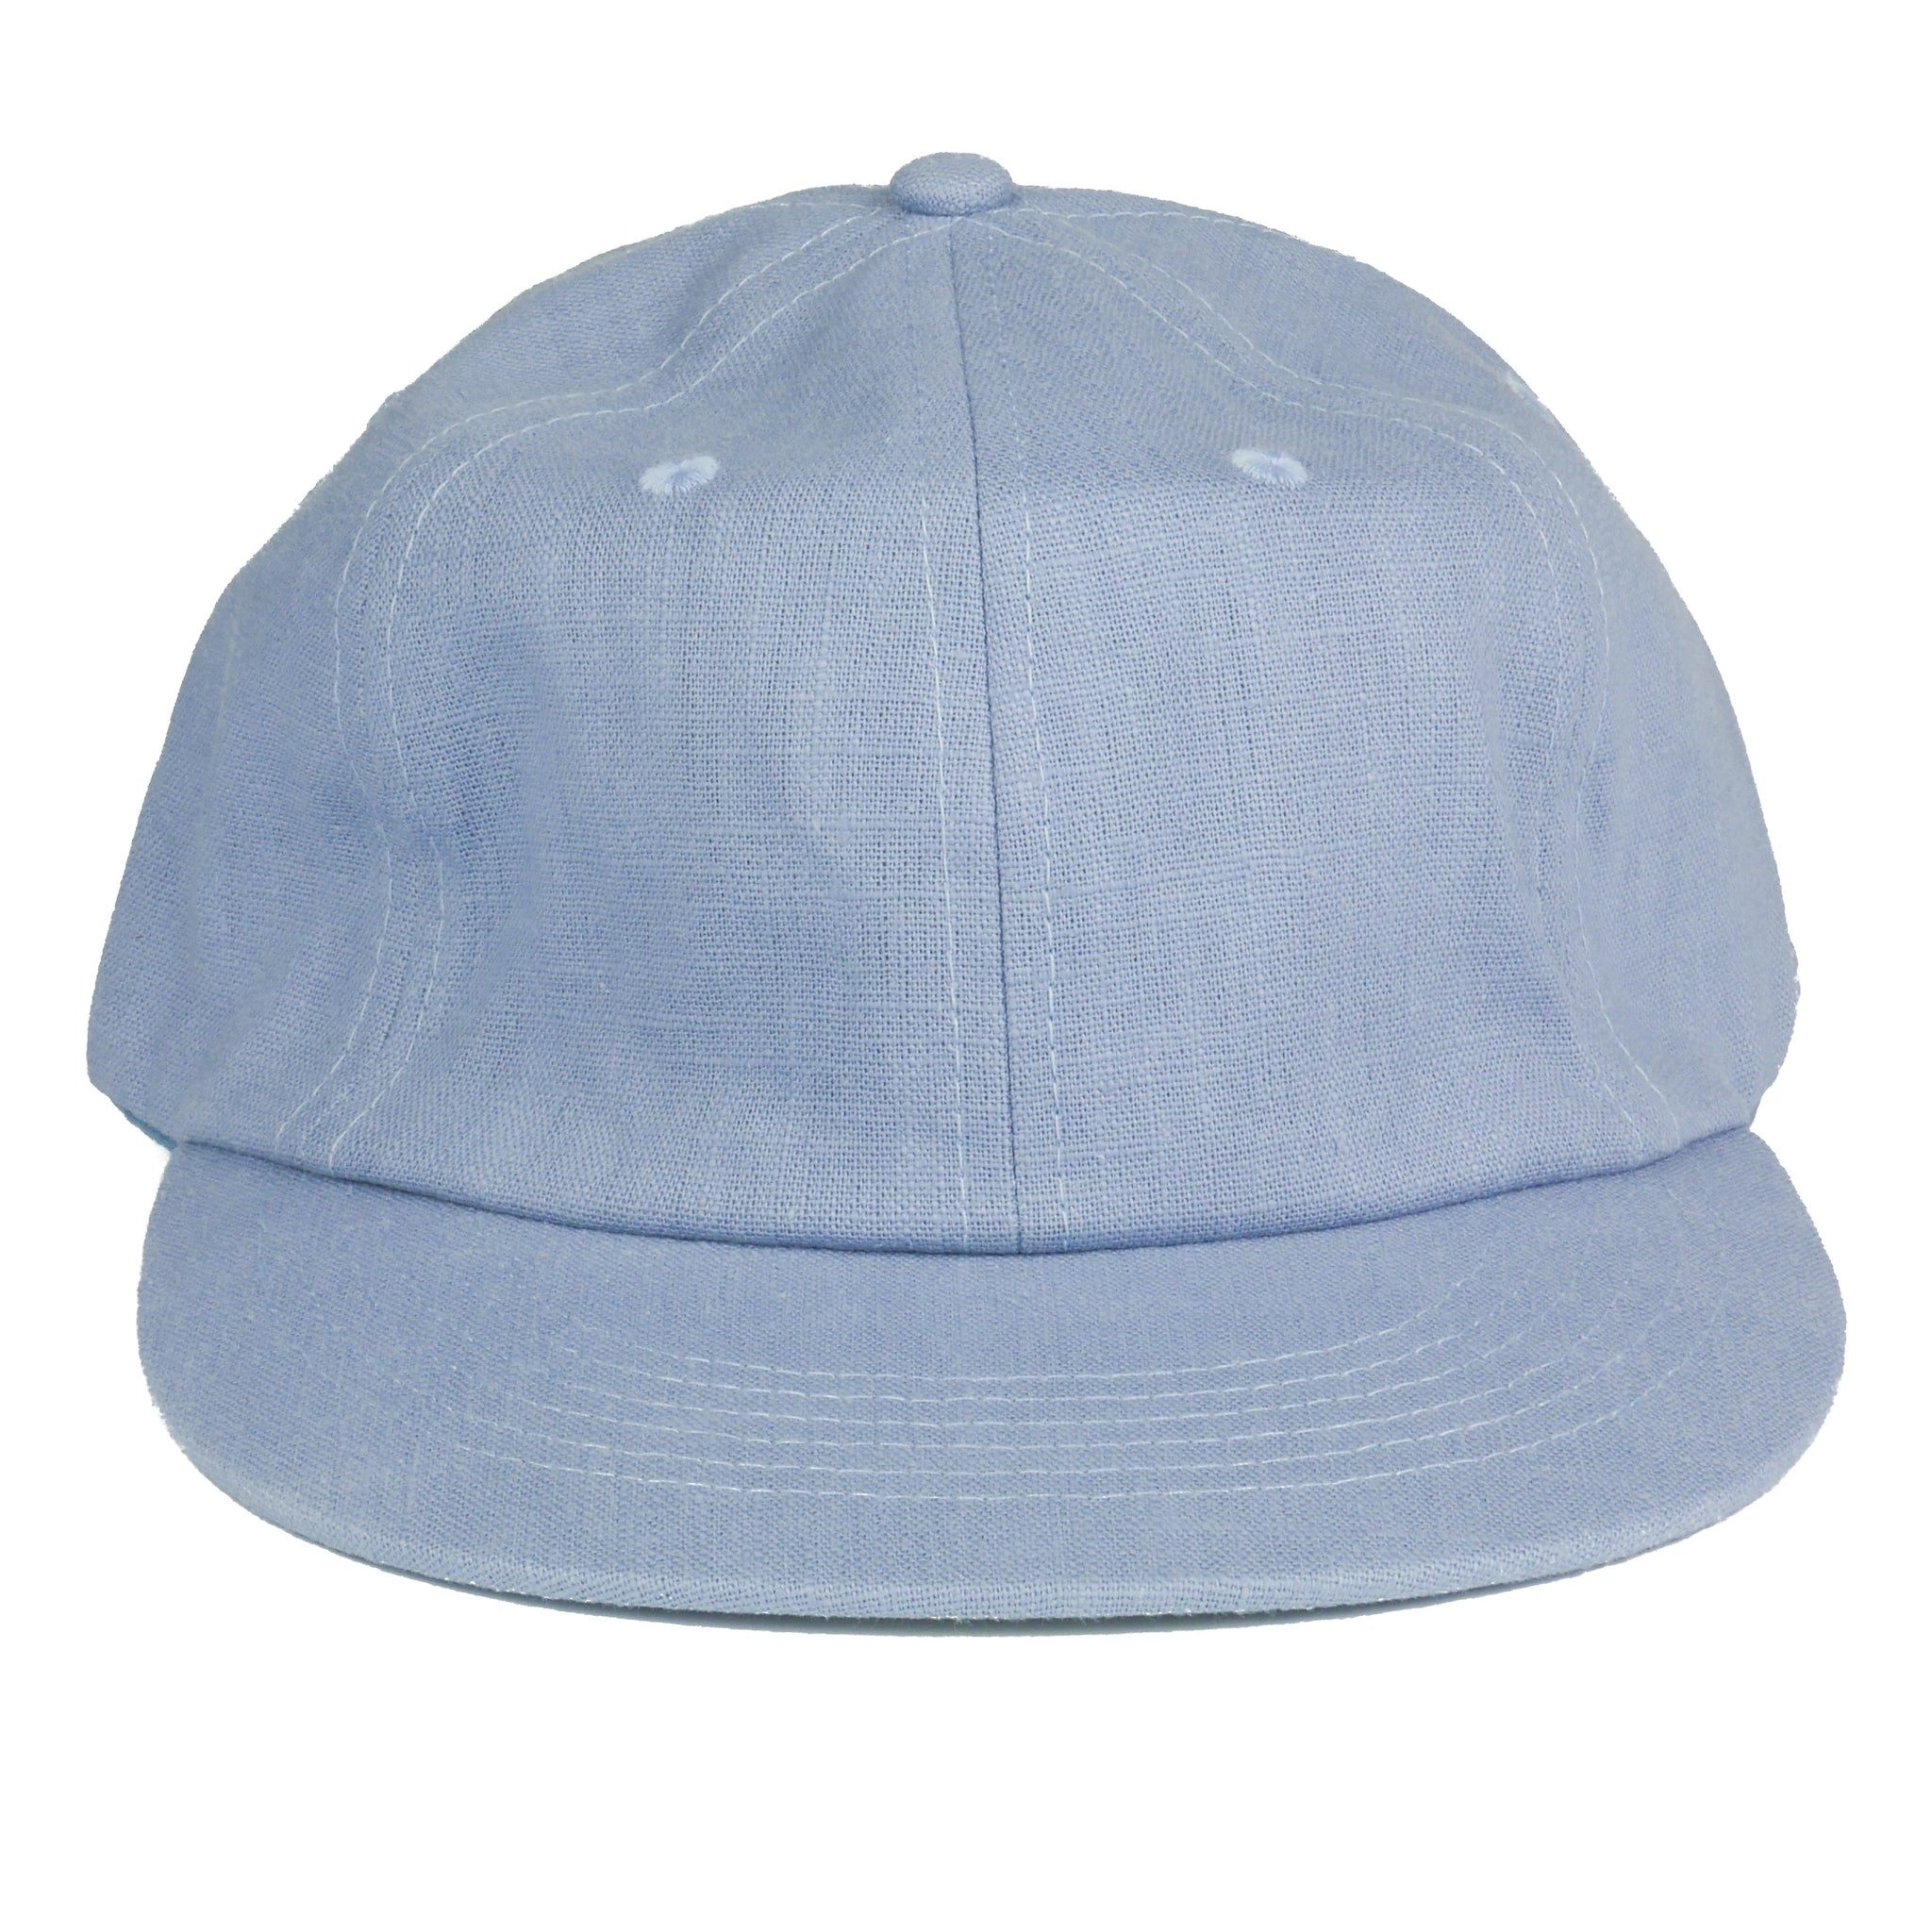 The Easy - Linen - Baby Blue